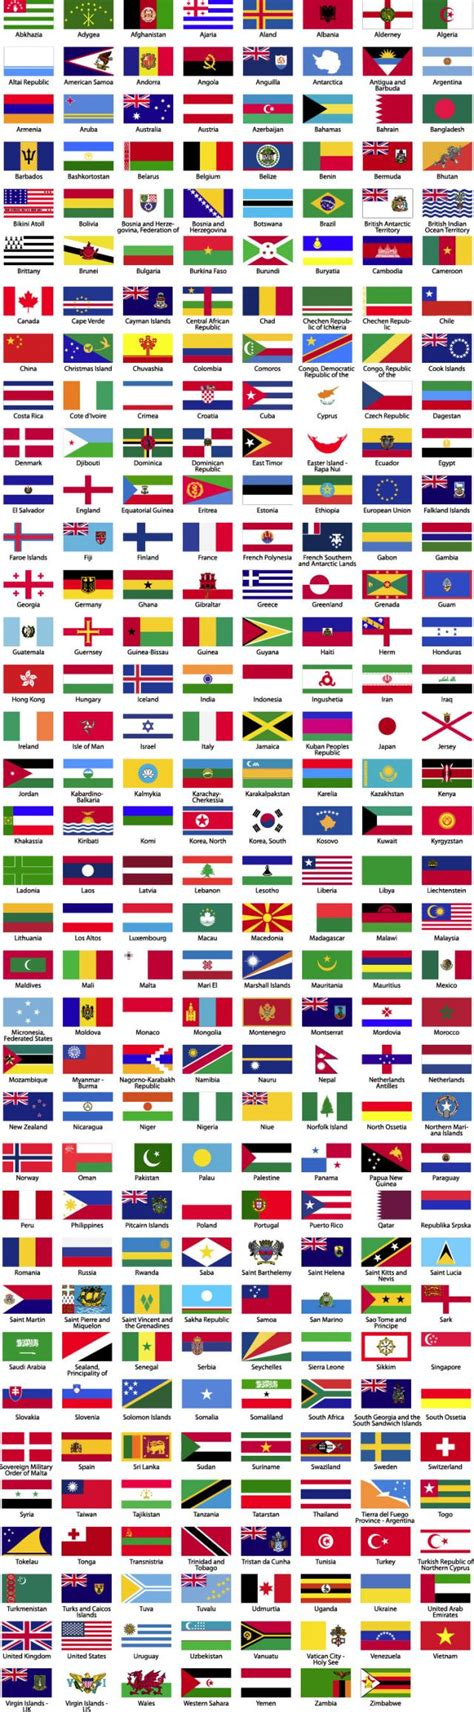 flags of the world fotw 世界287ヵ国の国旗 無料ベクターイラスト素材 all free clipart